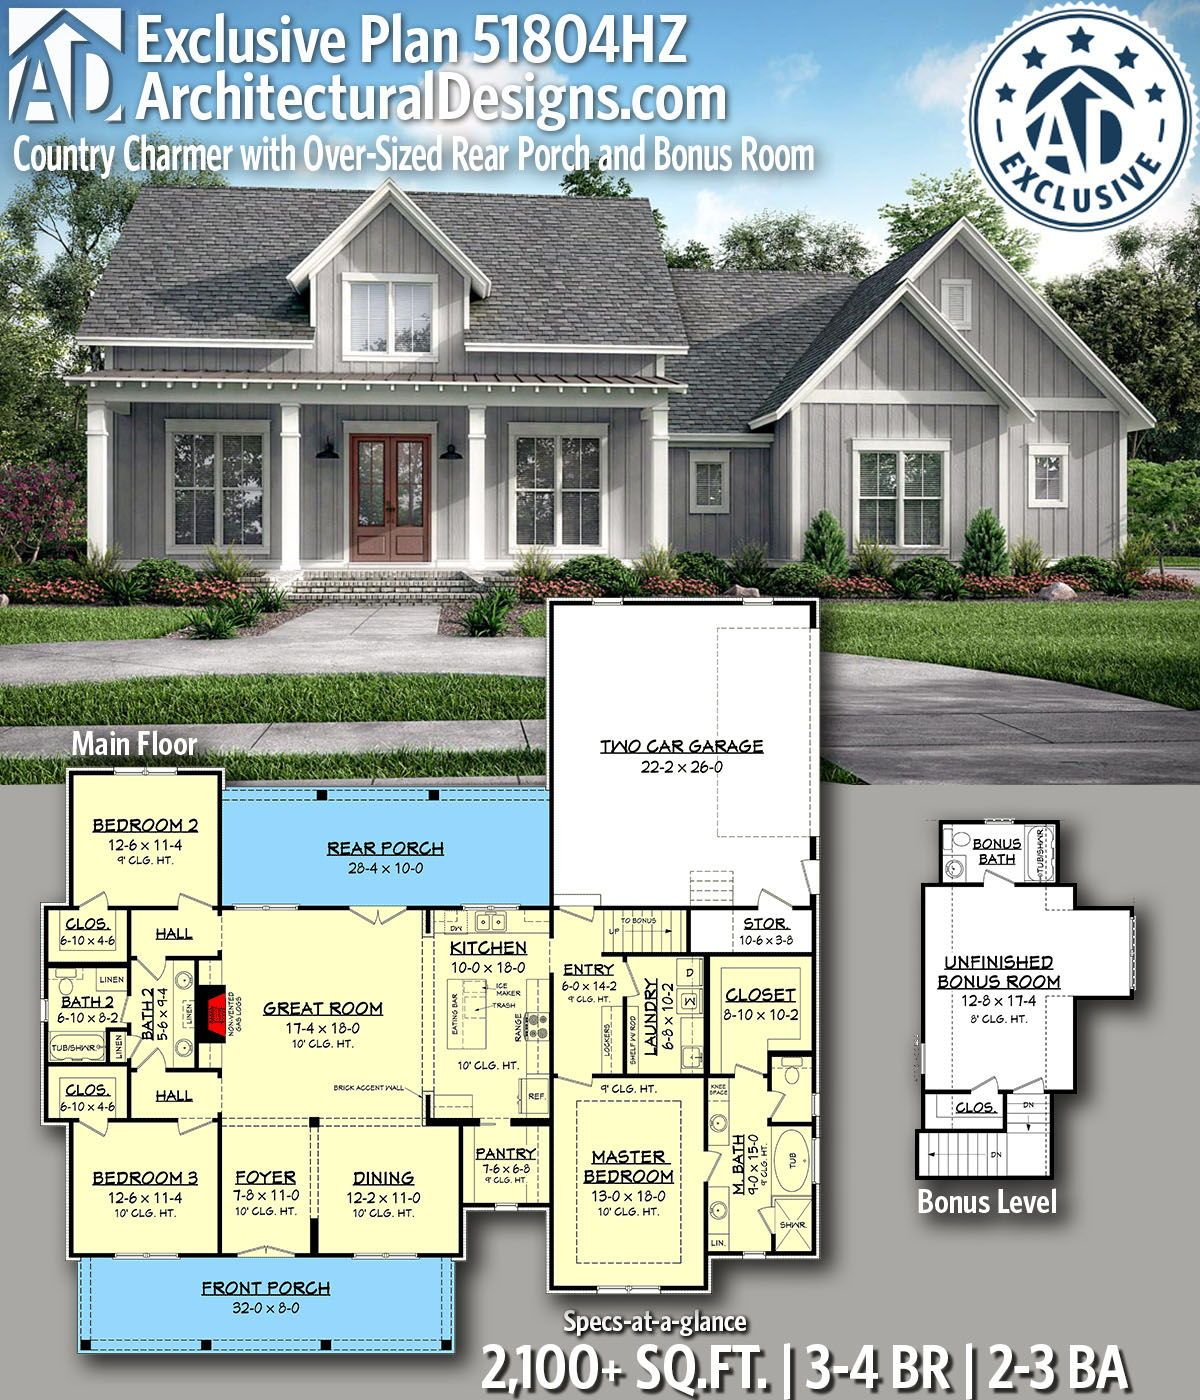 Plan 51804hz Country Charmer With Over Sized Rear Porch And Bonus